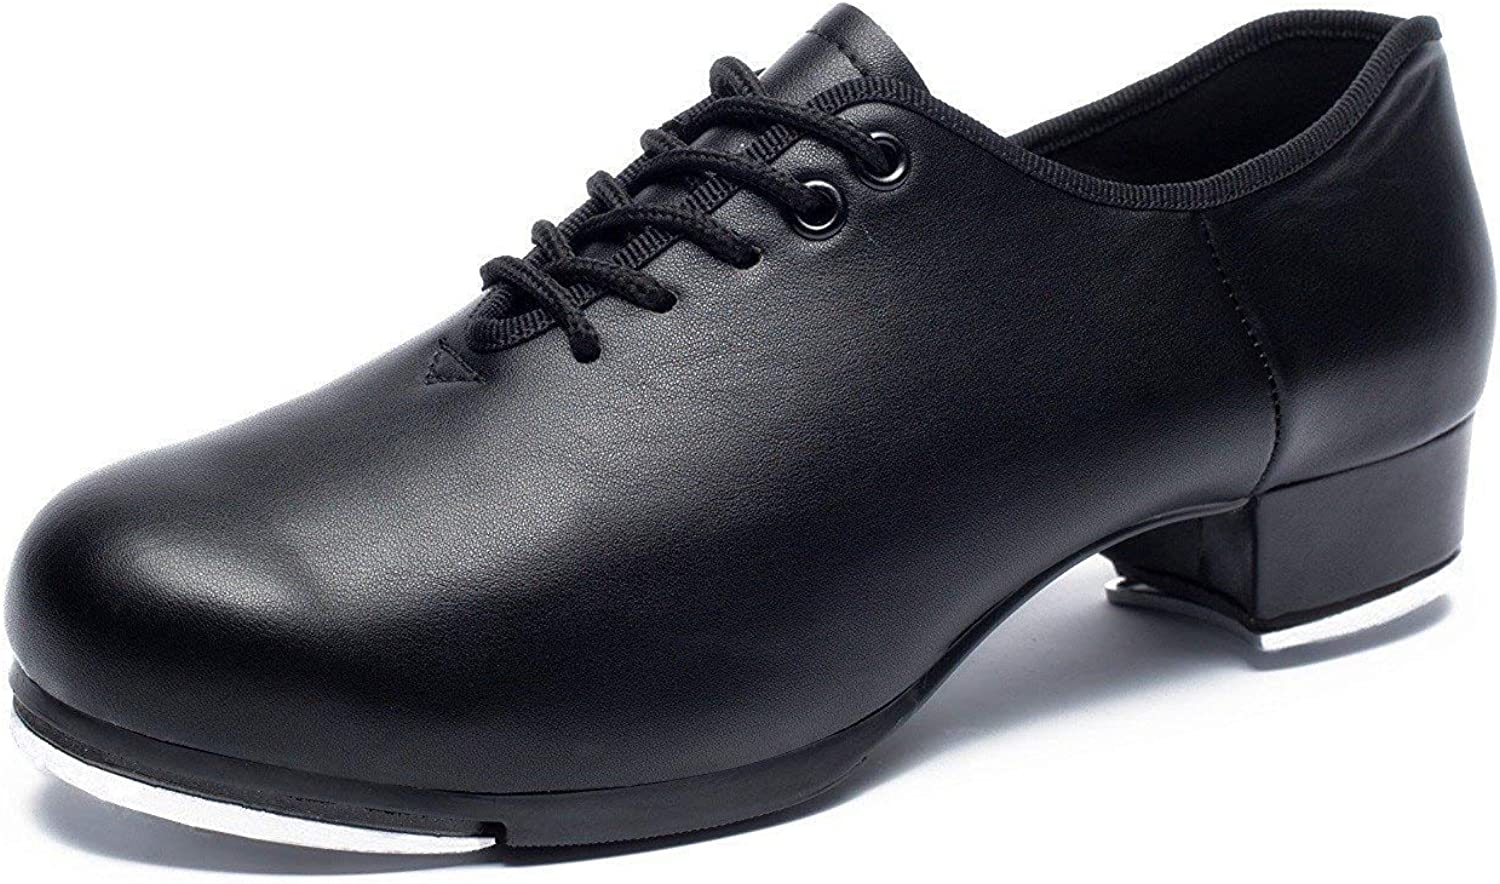 Joocare Women's Lace-Up Jazz Tap Dance shoes (Adult Unisex for Big Kid) (10 M US, Black)